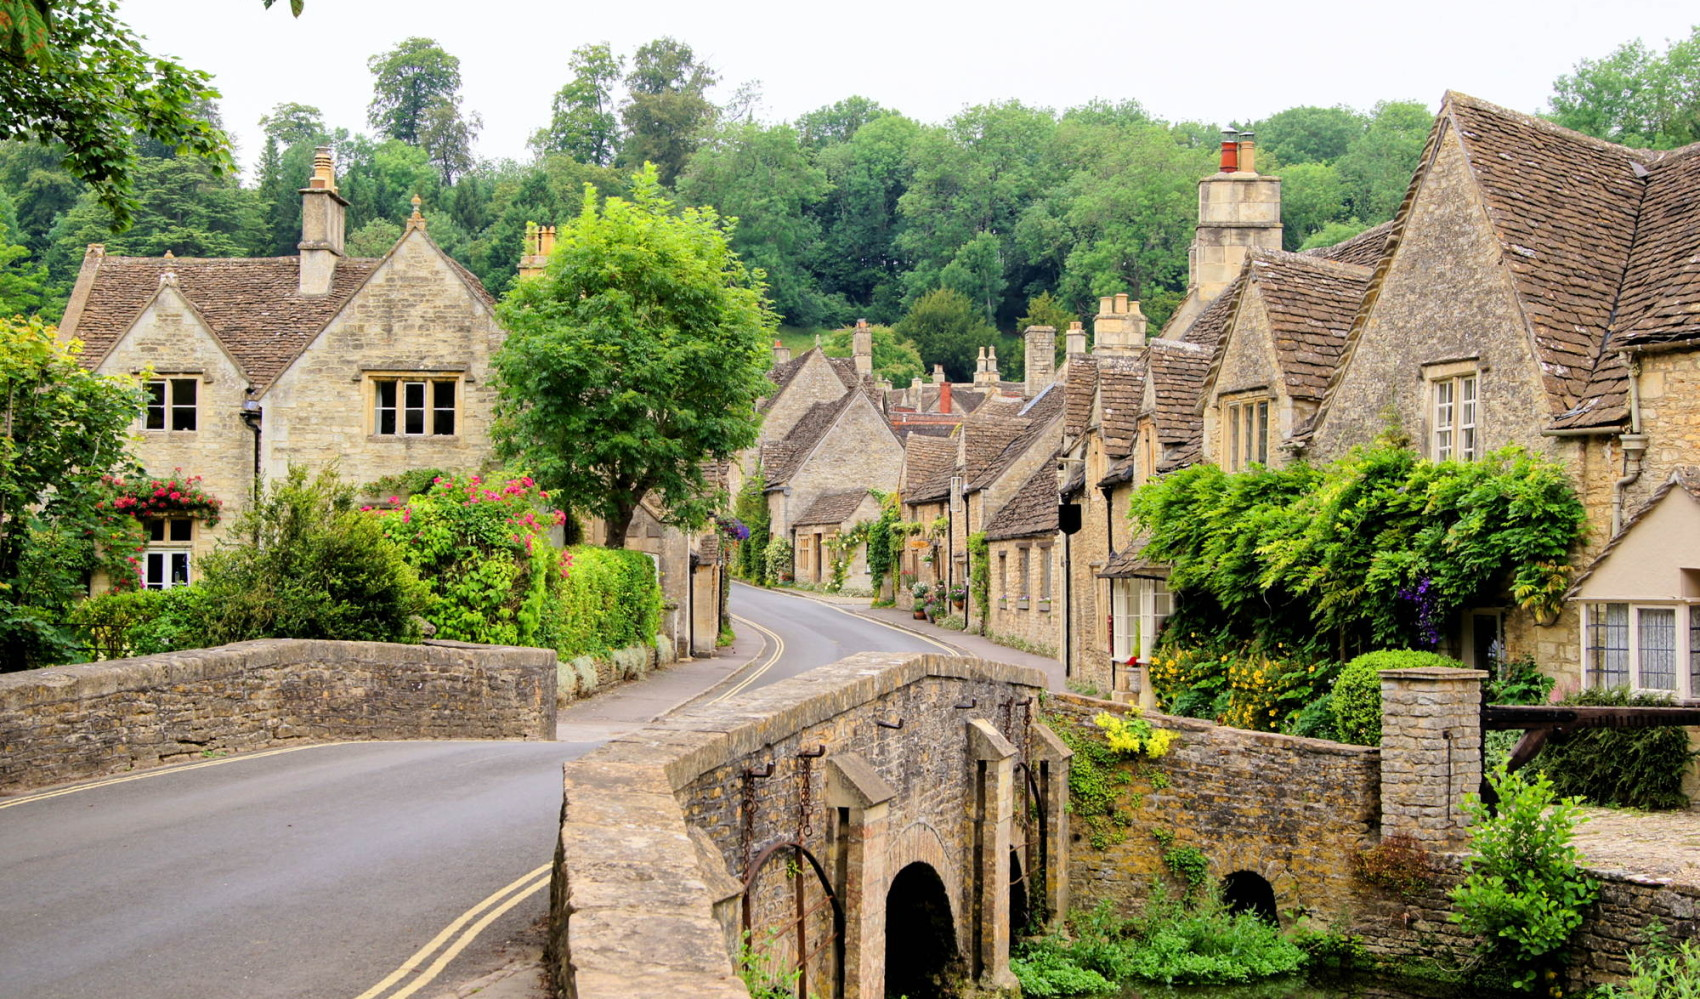 Vacanza nelle Cotswolds inglesi